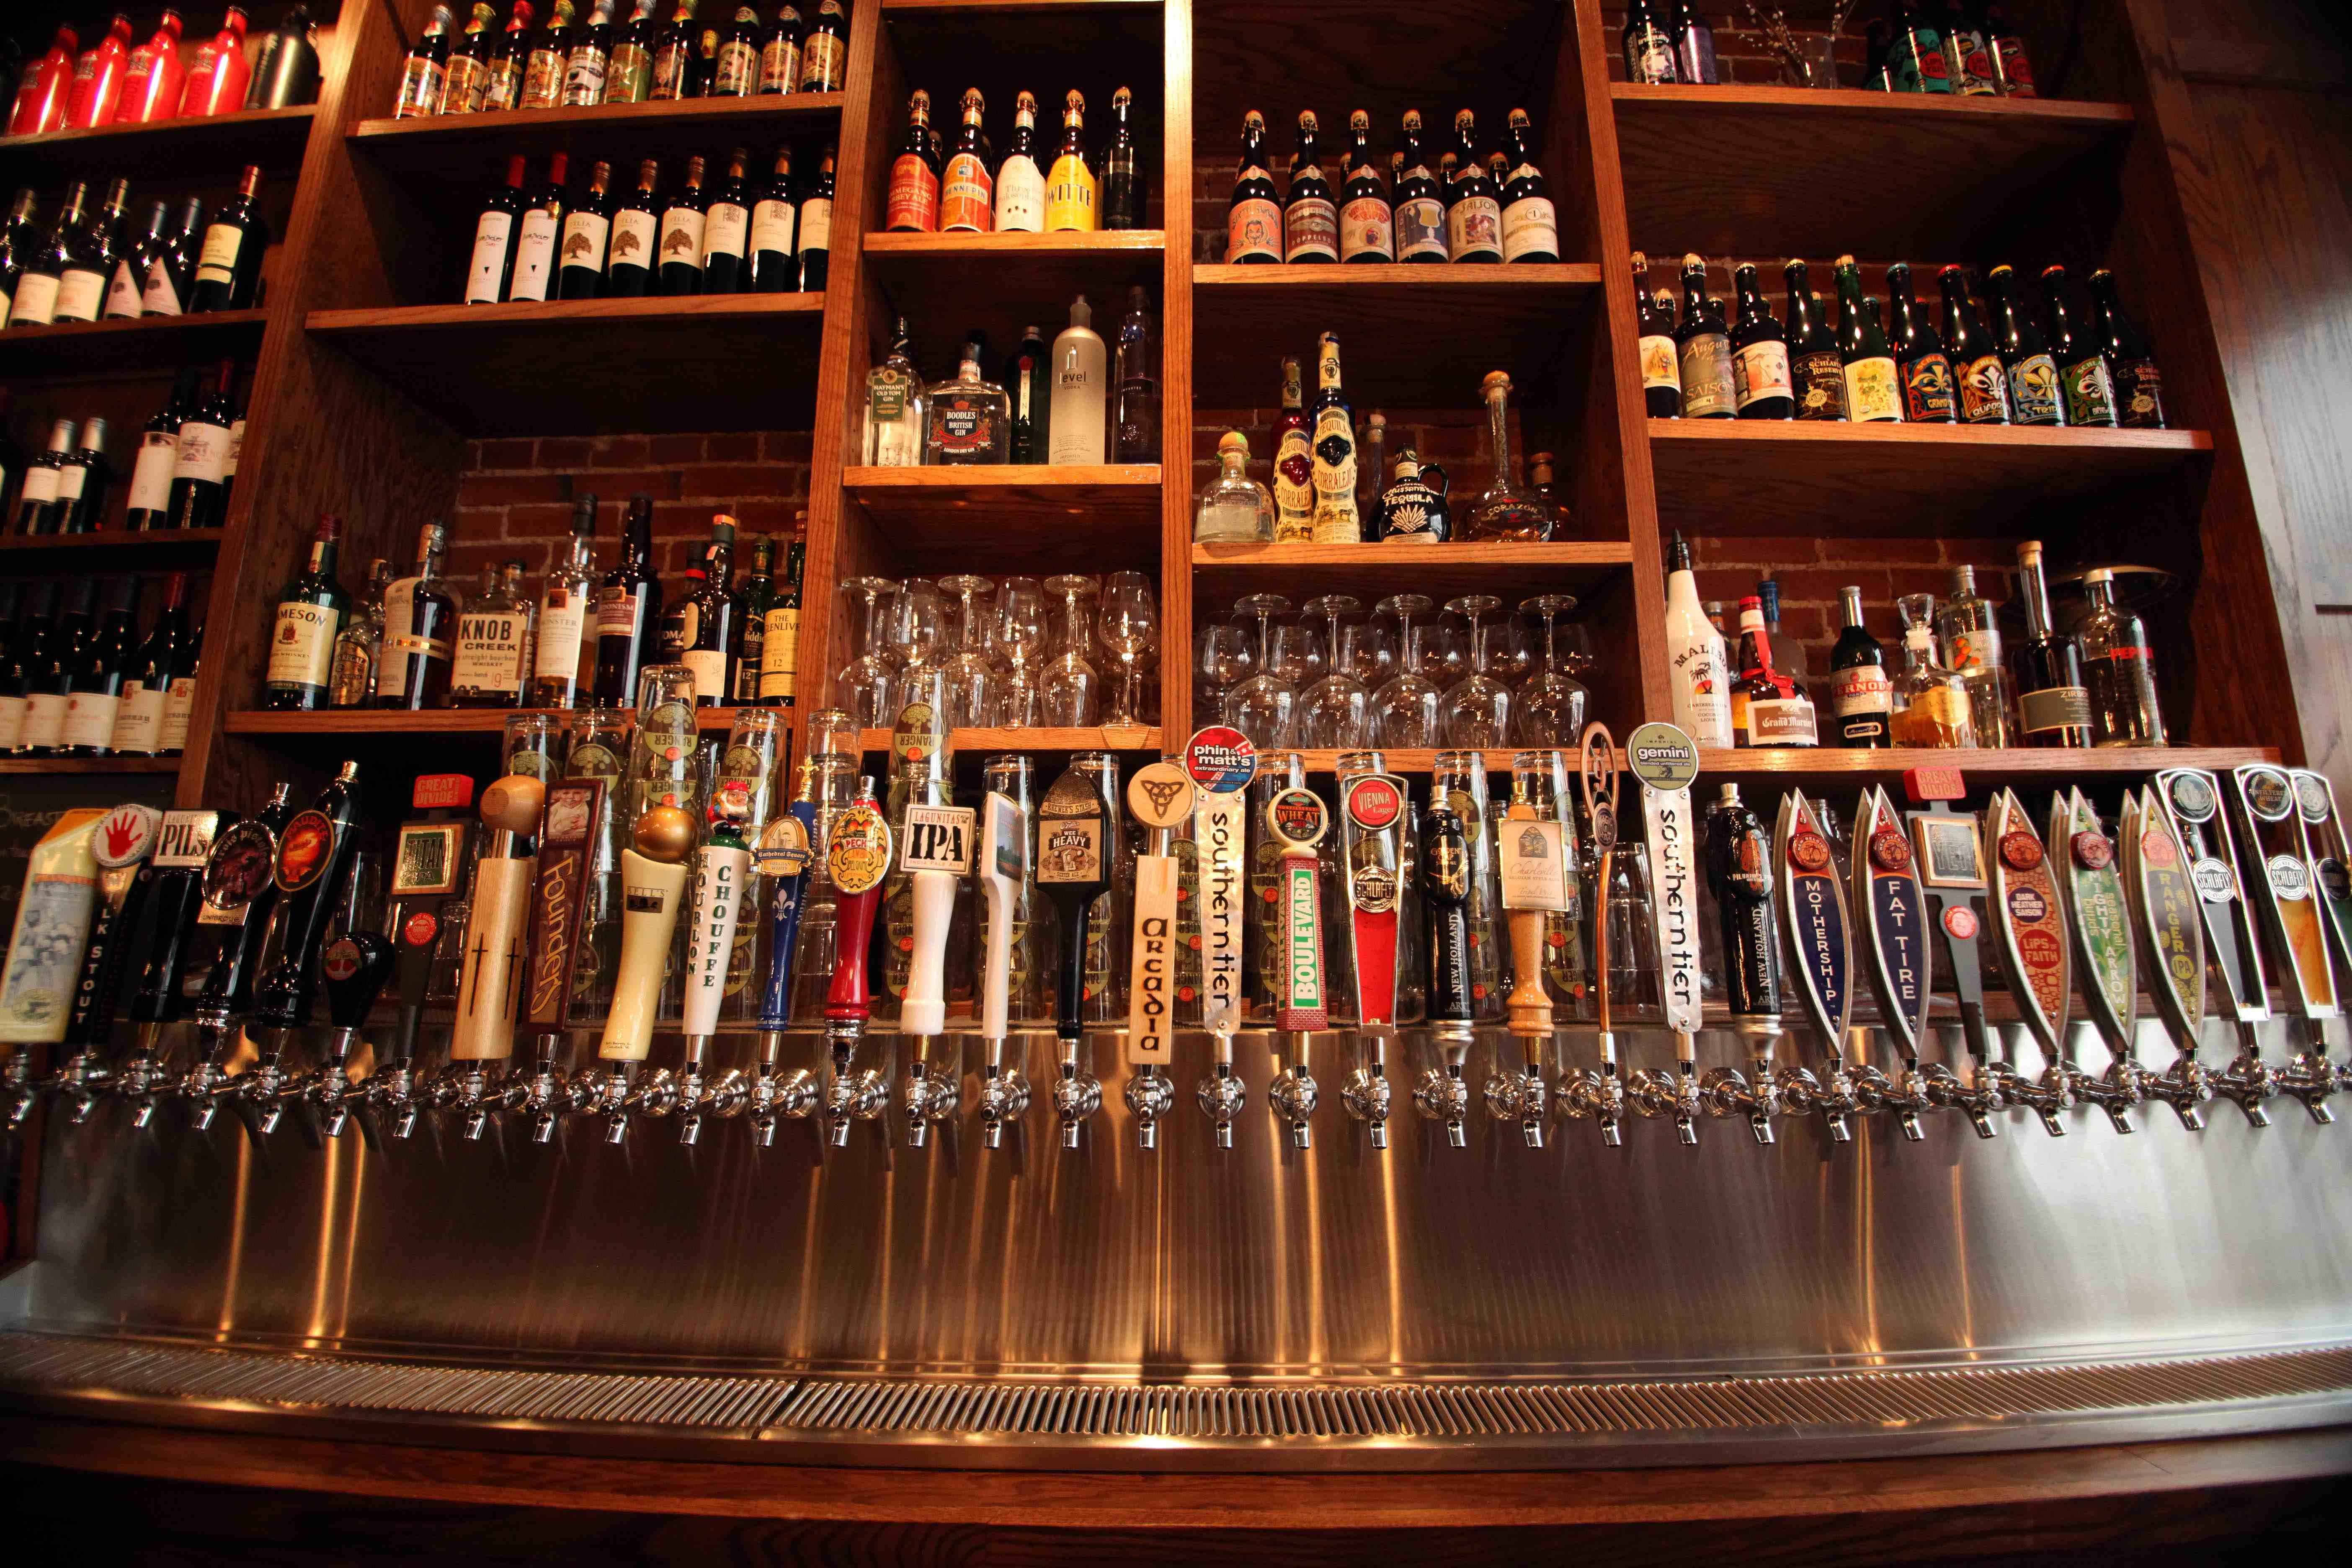 Los Angeles Eight Best Craft Beer Bars | I ❤ L.A. | Pinterest | Beer Bar,  Beer And Los Angeles